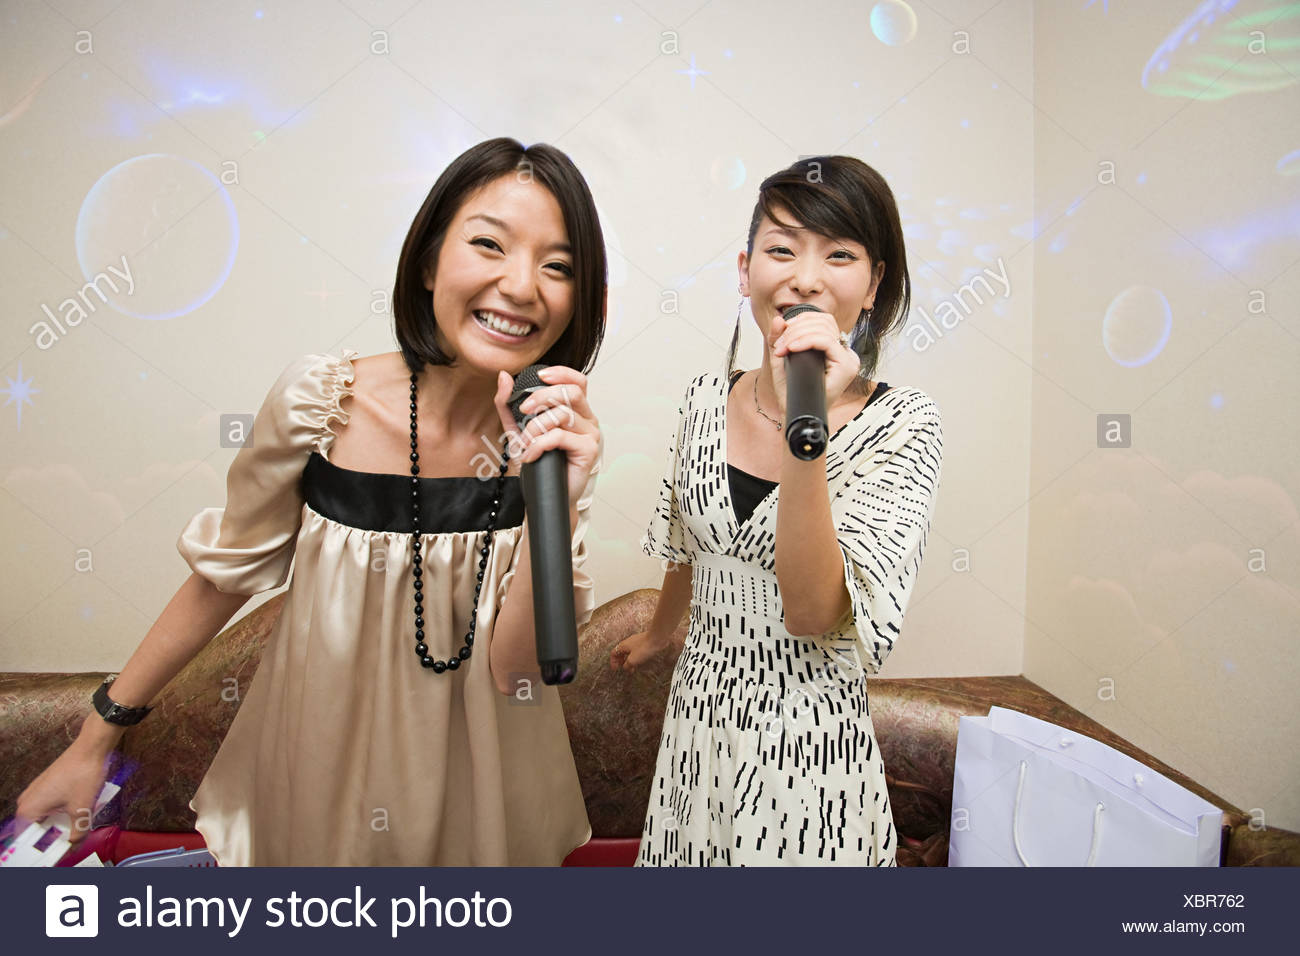 Friends singing karaoke - Stock Image